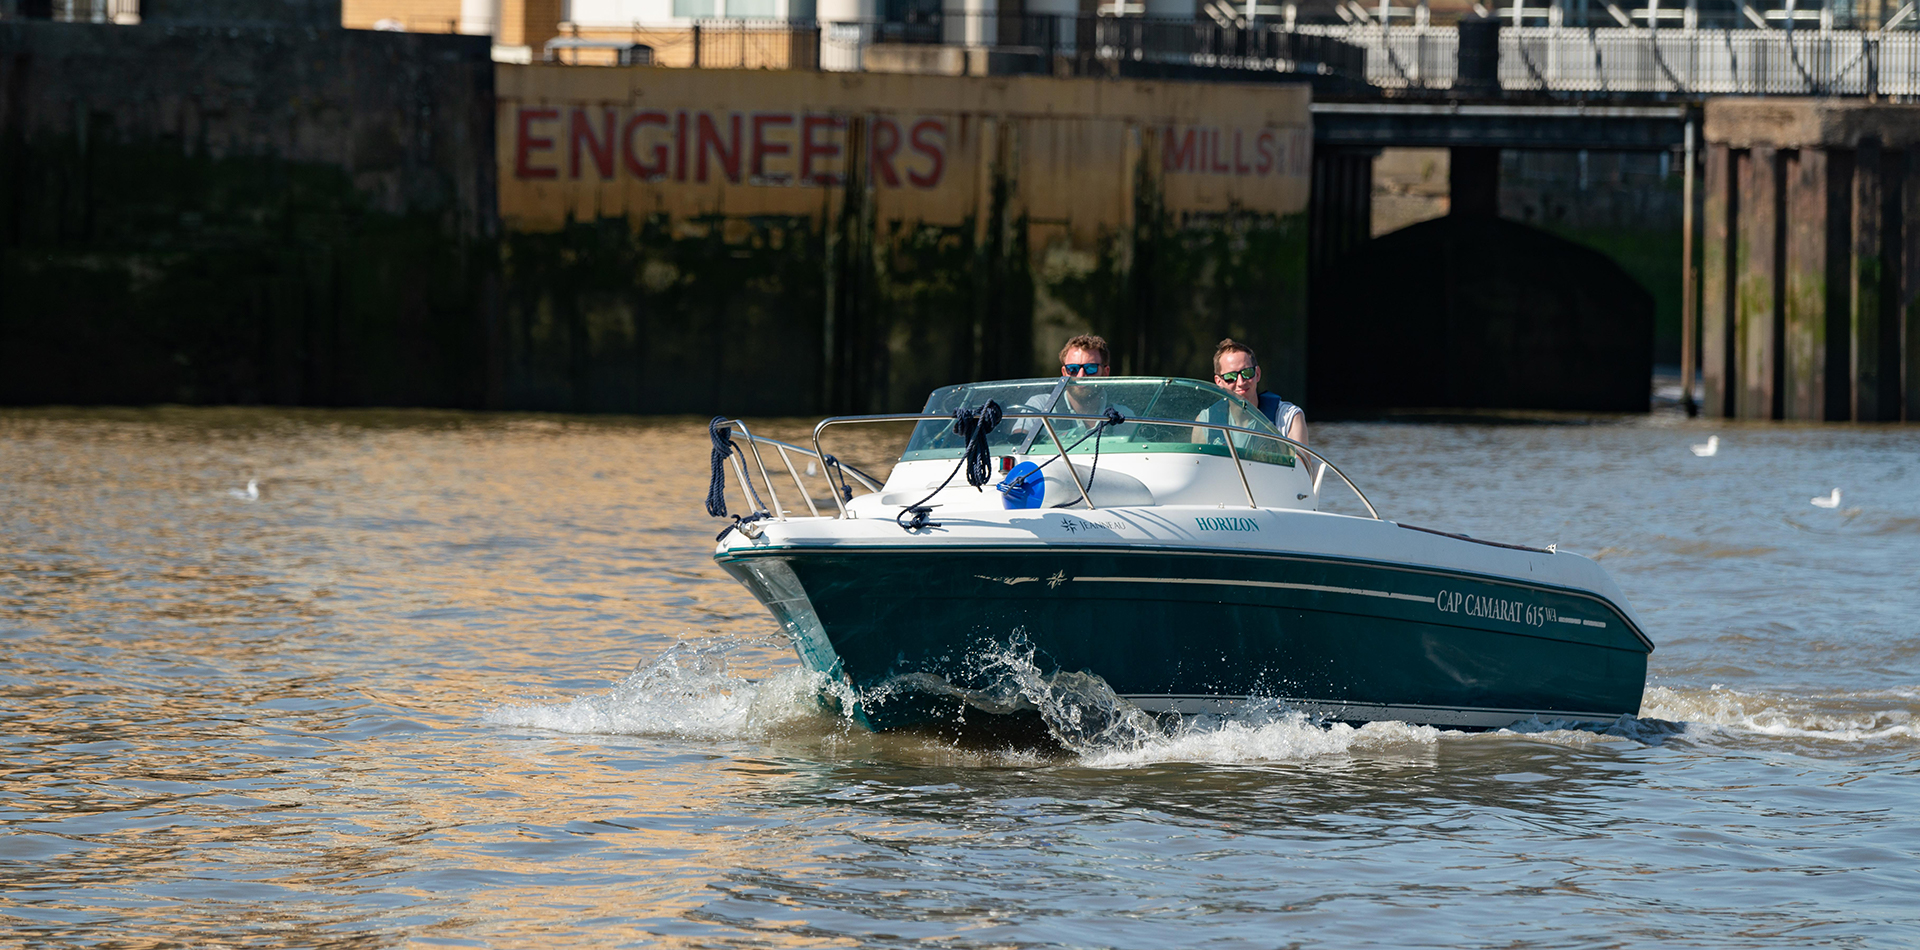 Boating on the tidal Thames